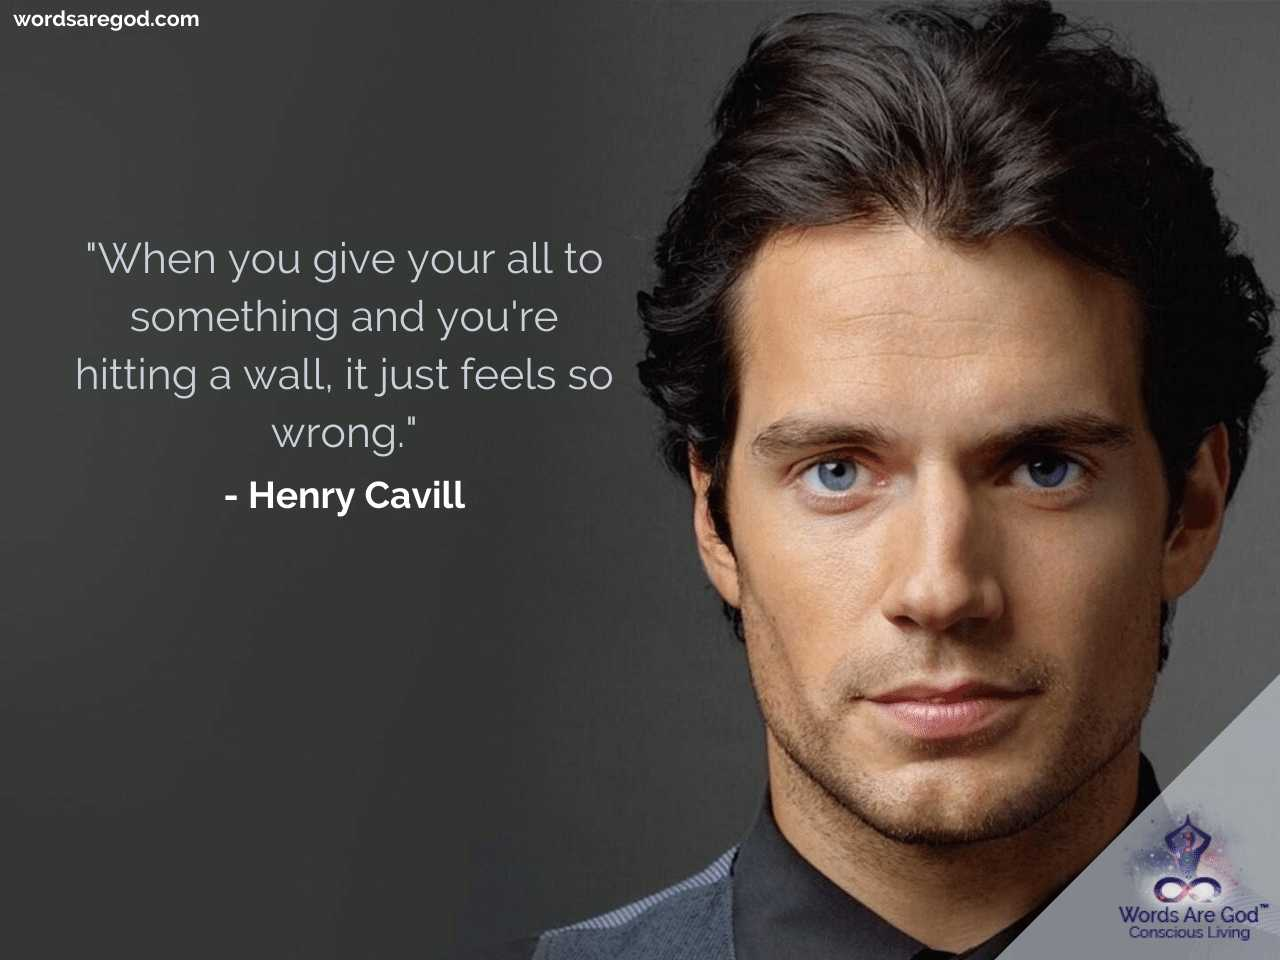 Henry Cavill Life Quotes